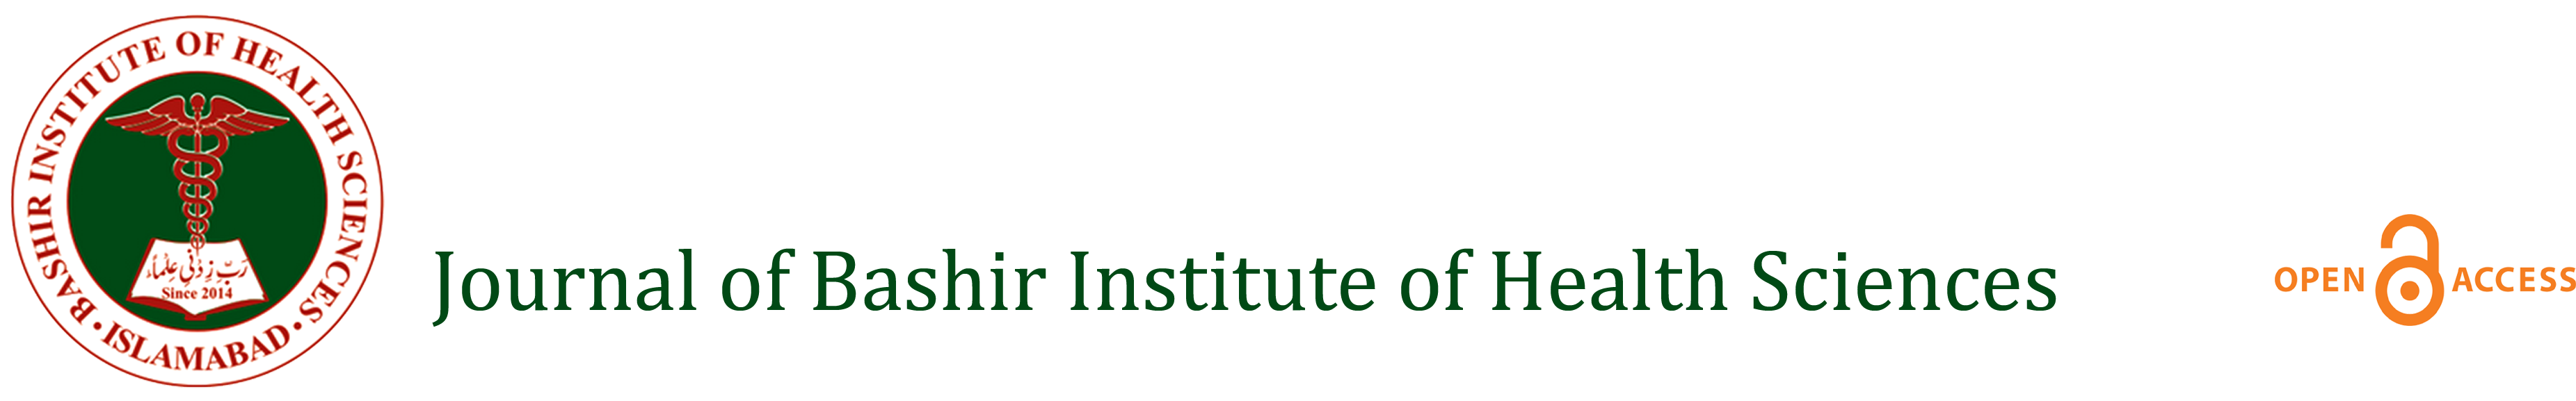 Journal of Bashir Institute of Health Sciences